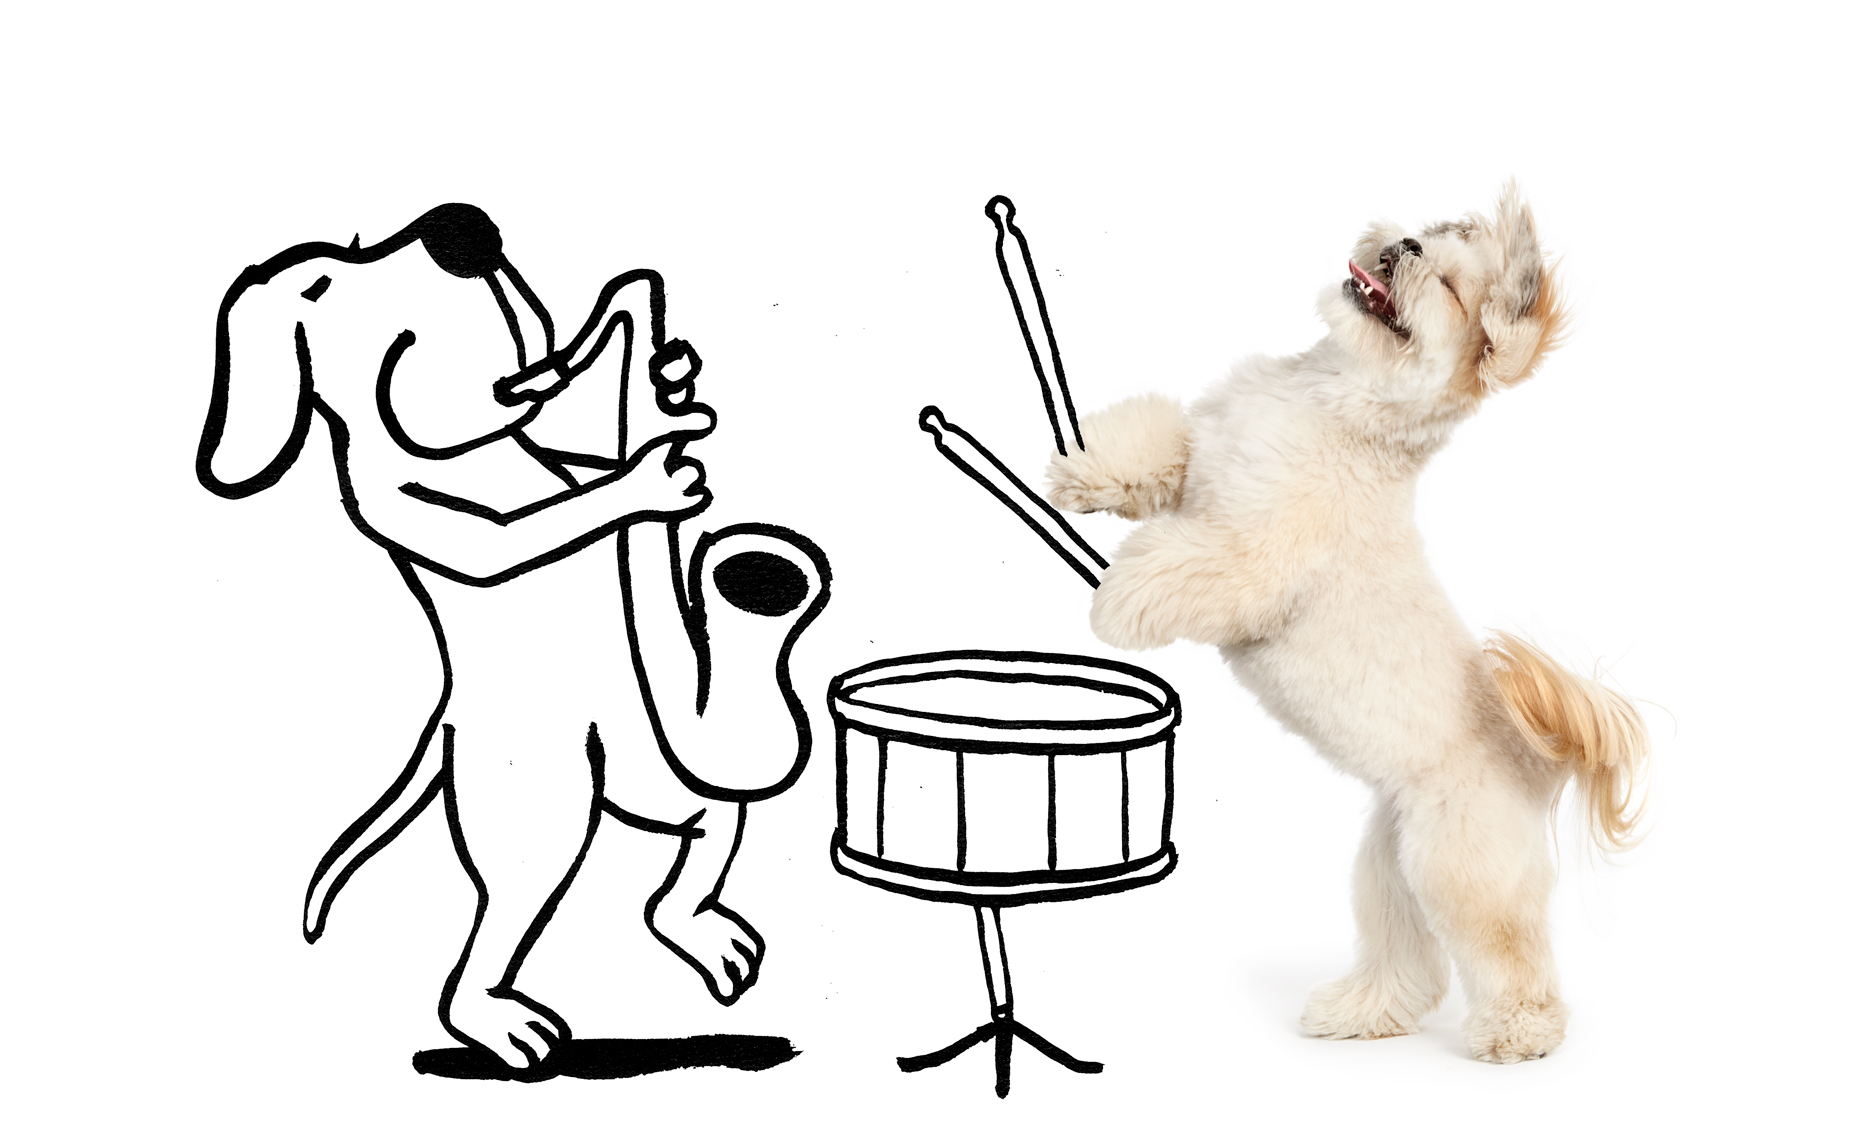 Lhasa Apso dog drumming